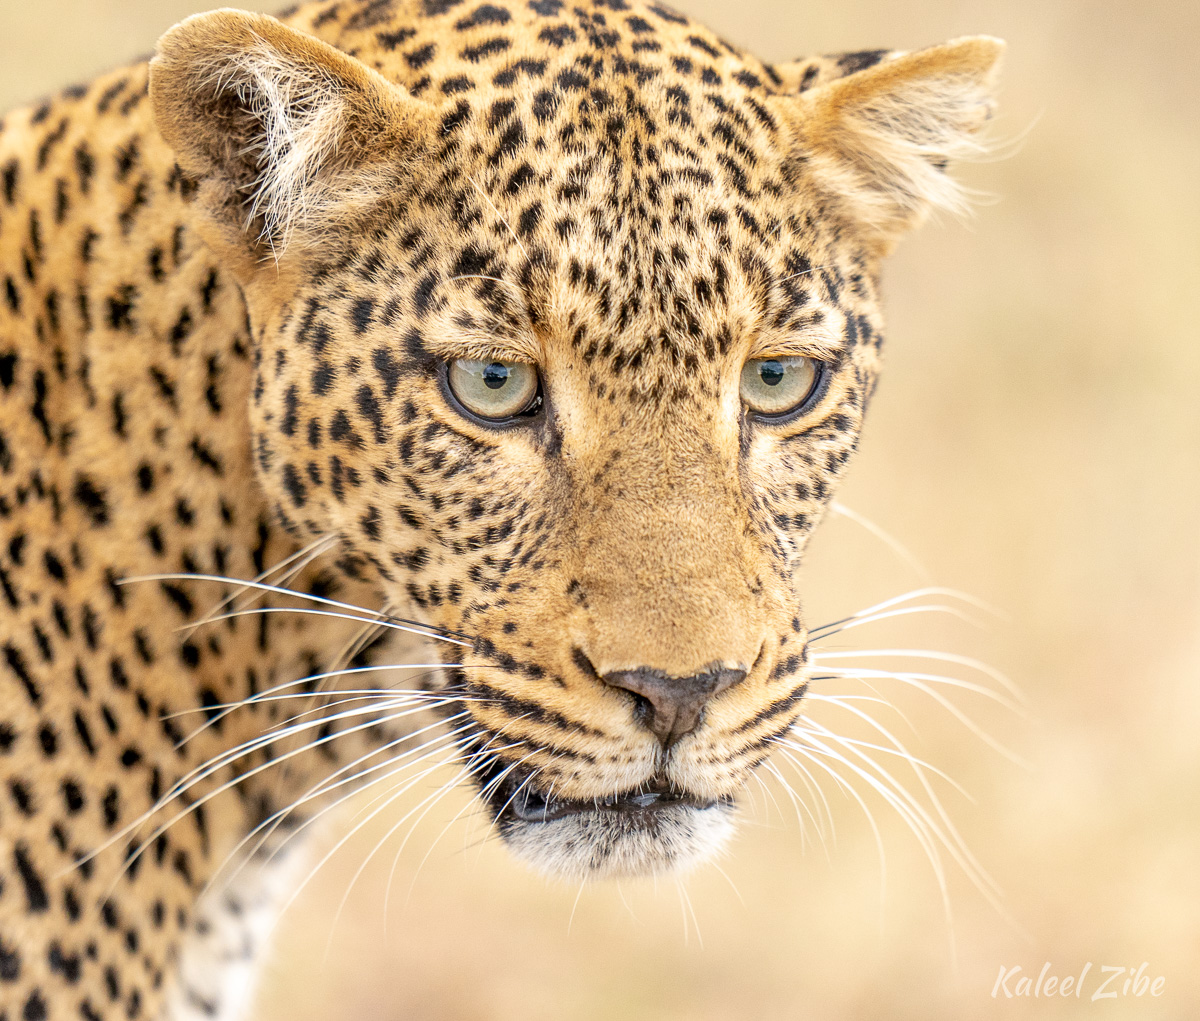 Female leopard close-up, Maasai Mara, Kenya